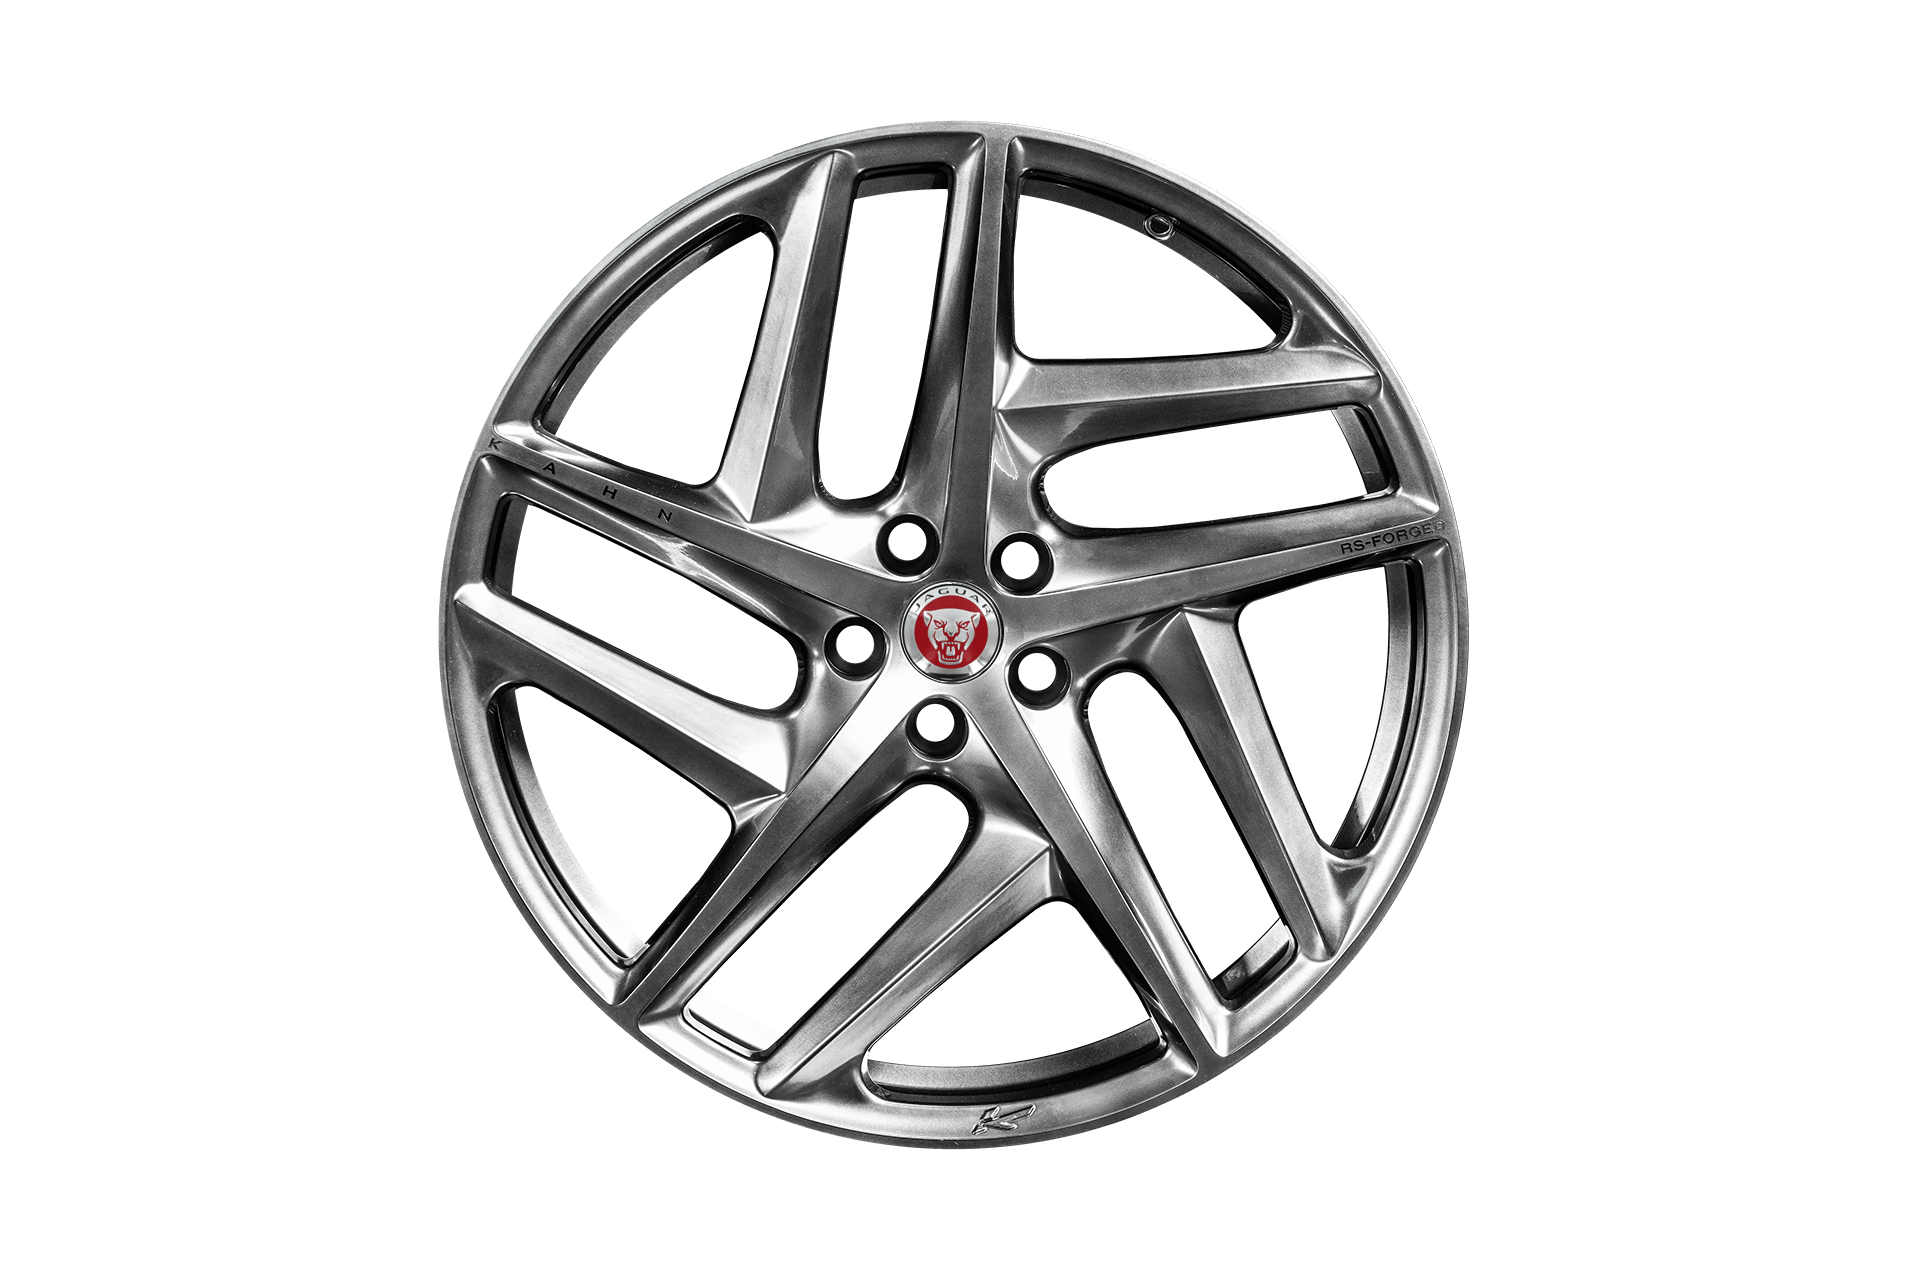 JAGUAR I-PACE (2018-PRESENT) Type 52 RS-Forged Alloy Wheels - Project Kahn